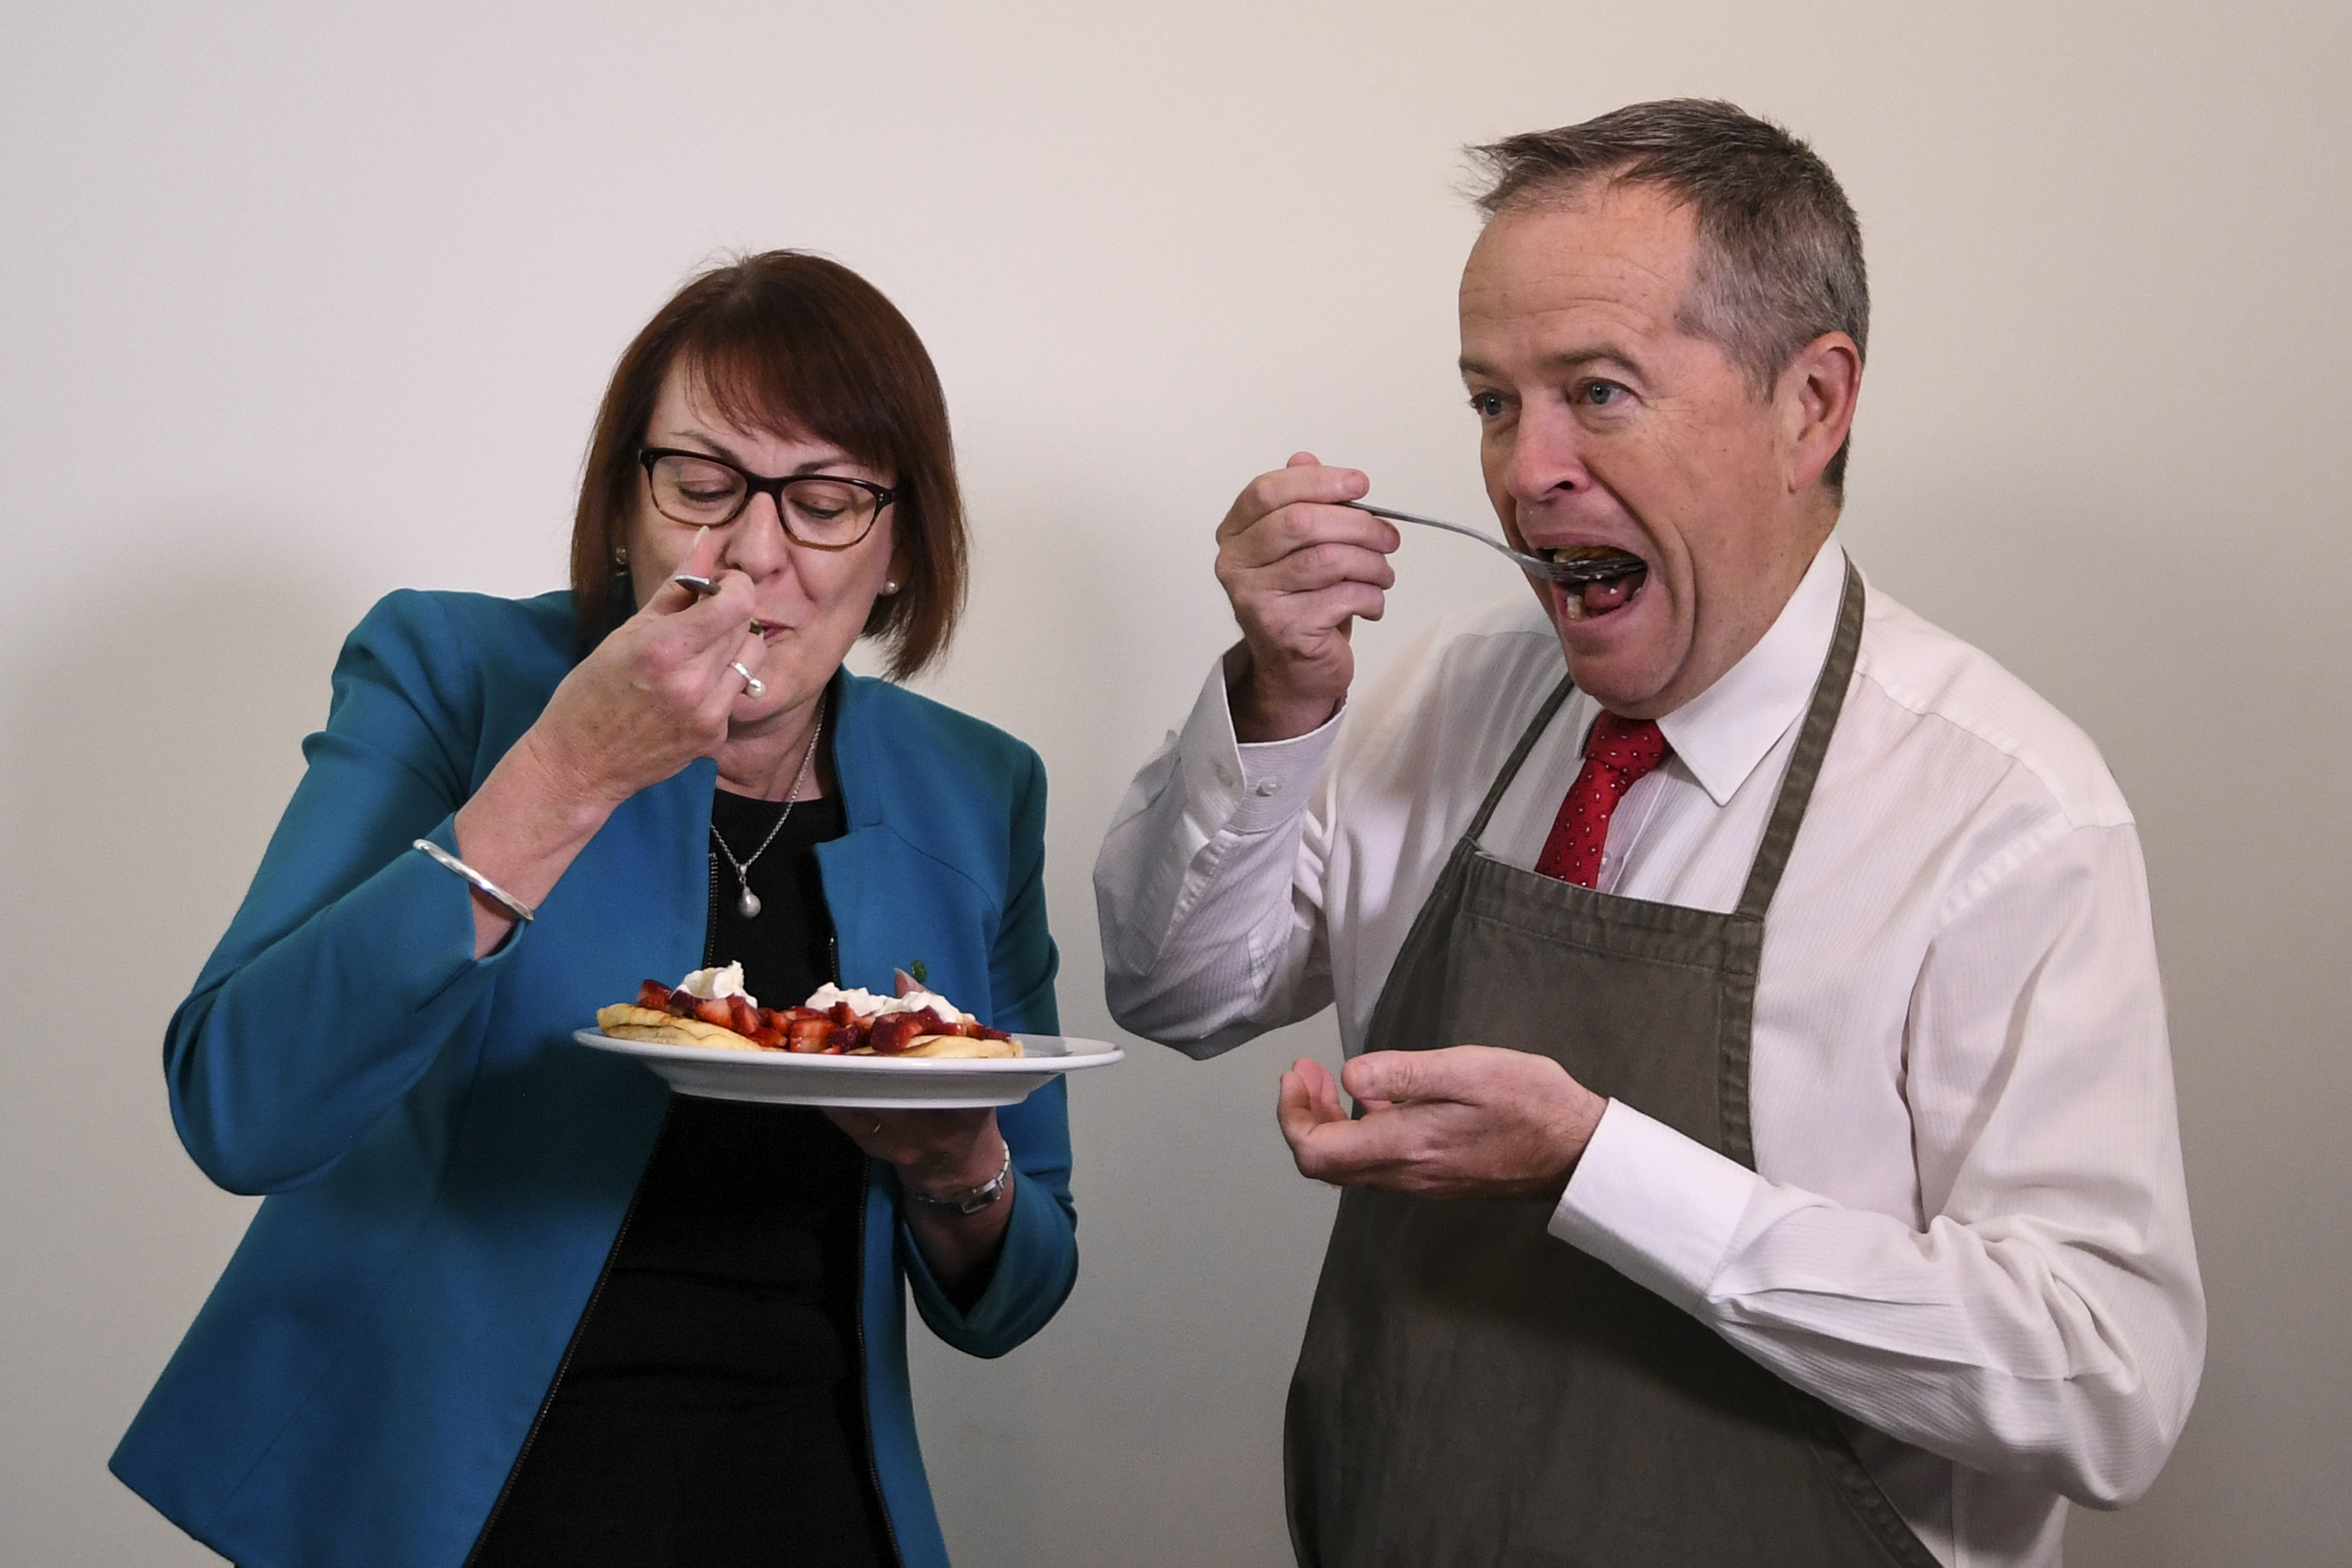 Australian Opposition Leader Bill Shorten and Labor MP Susan Templeman eat strawberry pancakes in Canberra